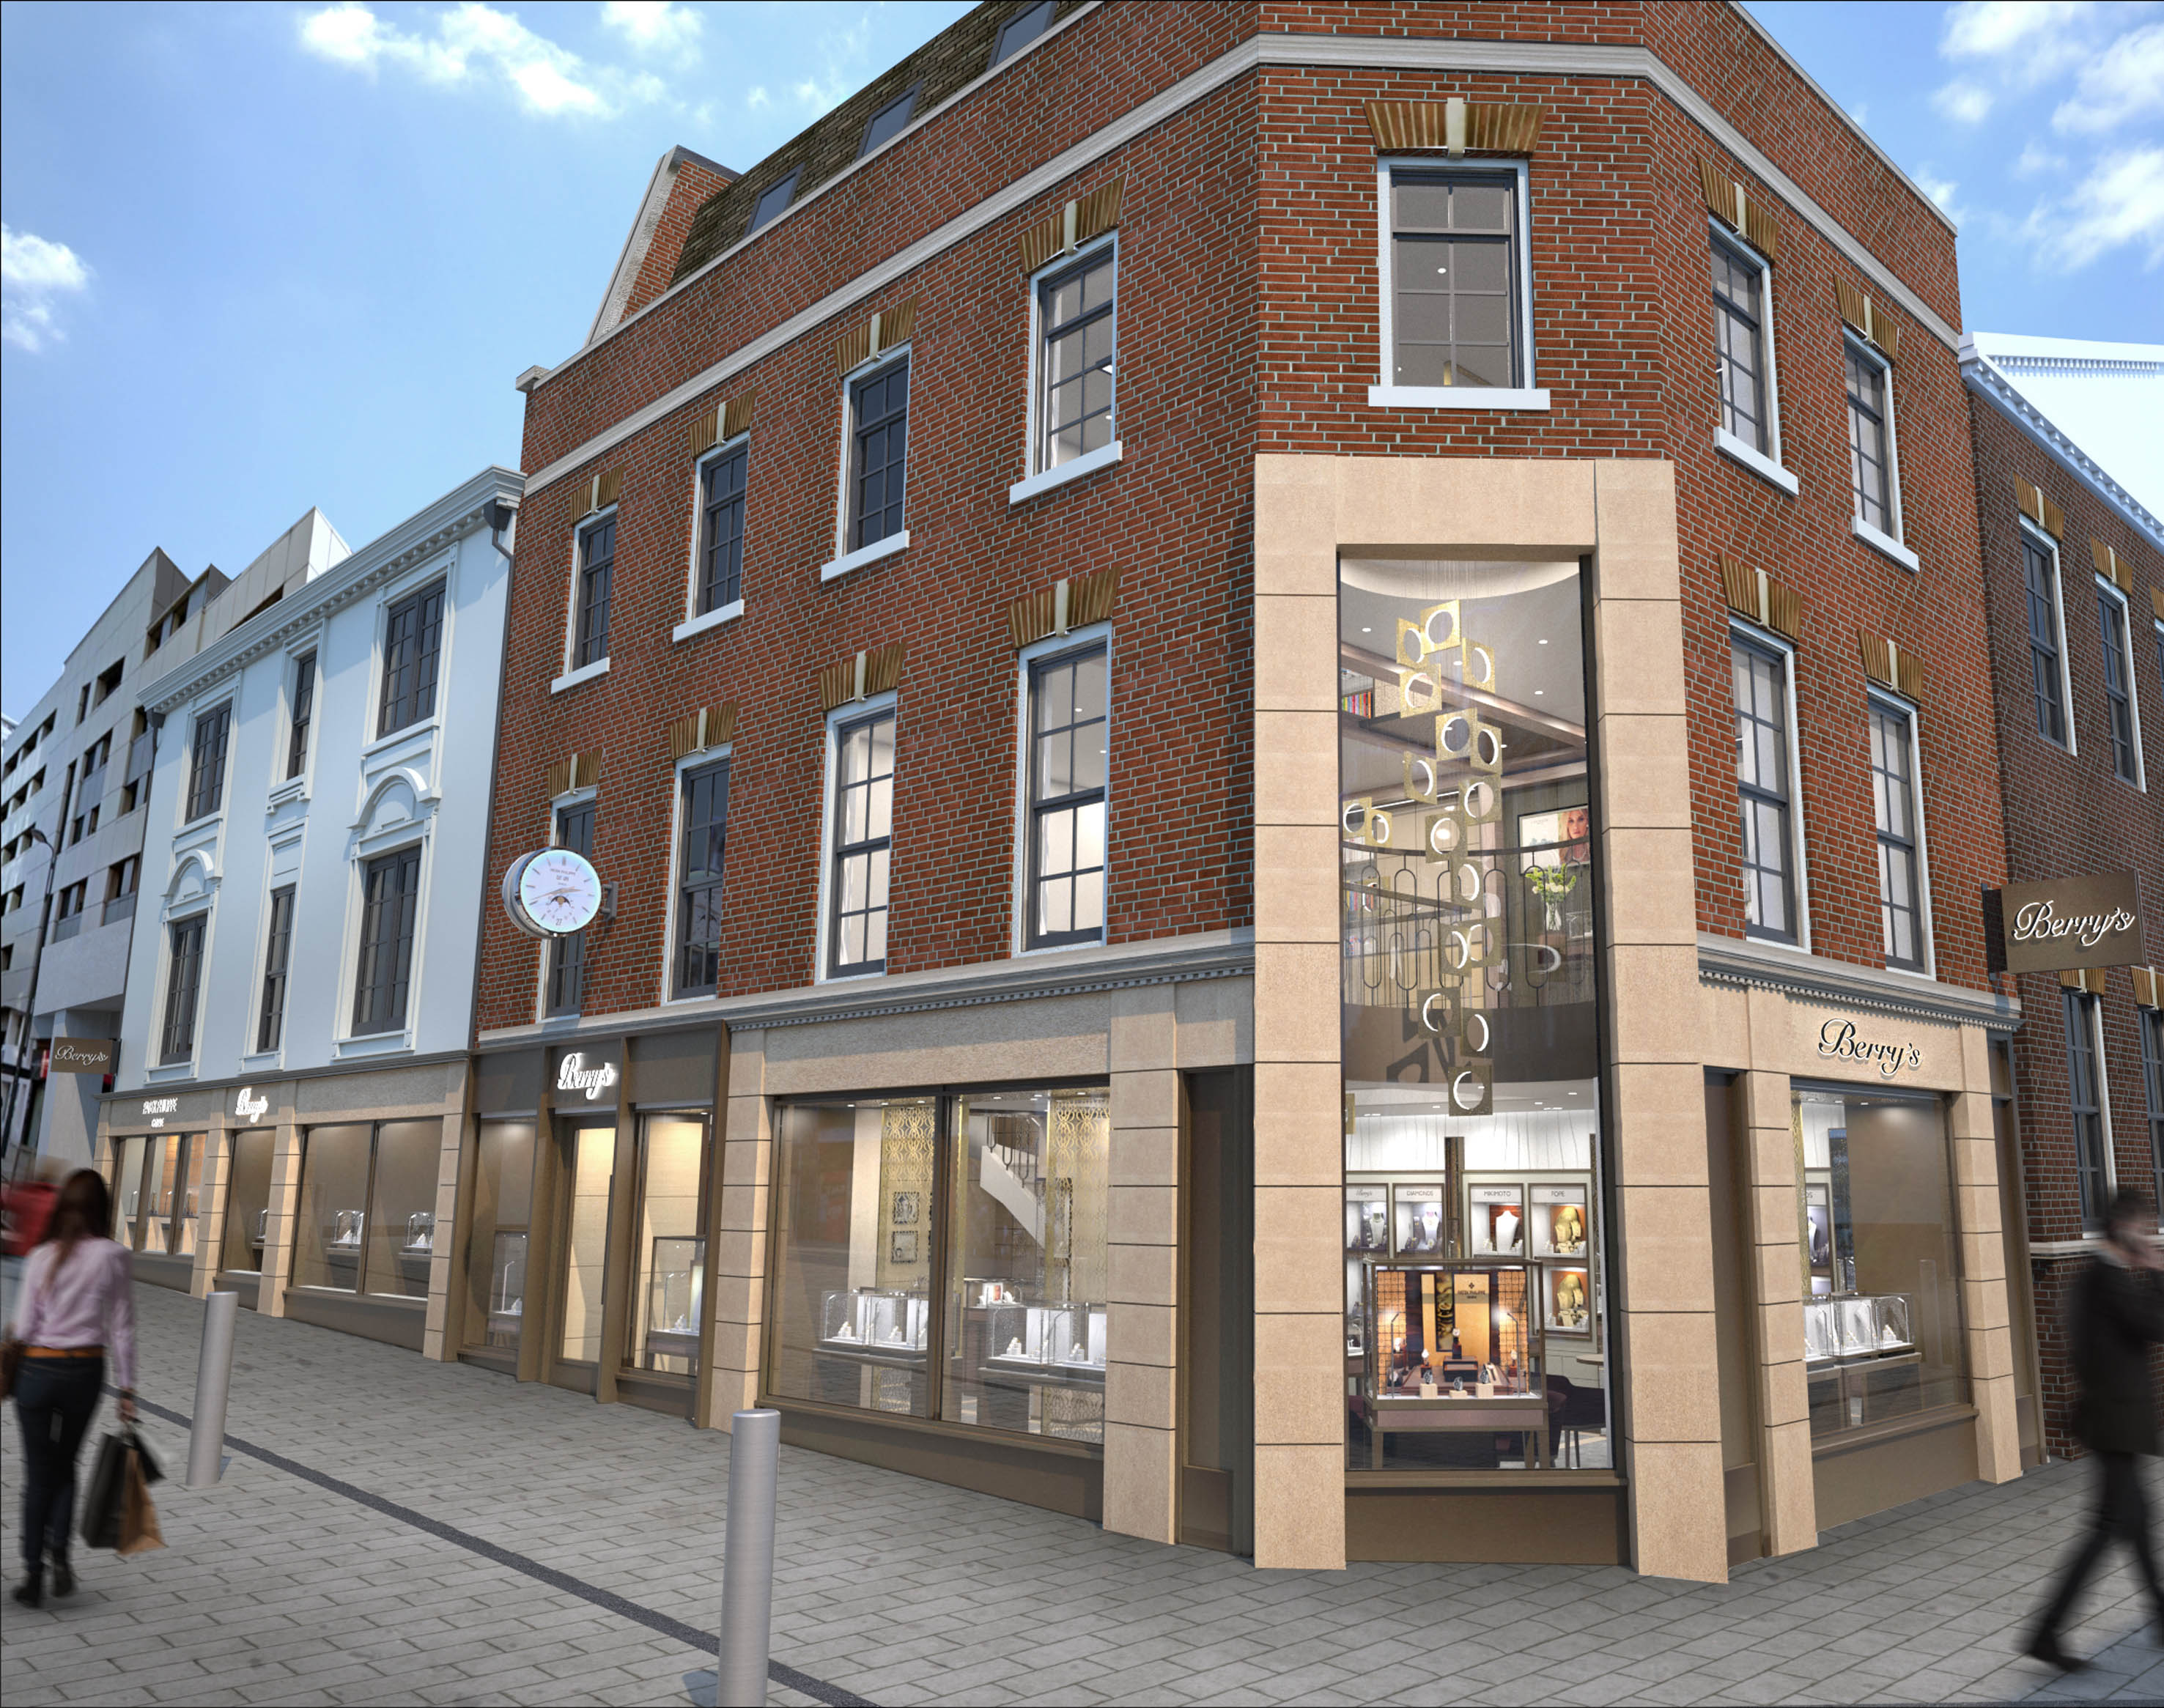 Berry's is doubling the size of its flagship Leeds store this summer. This artist's impression shows how the corner position gives space to jewellery and luxury watch brands.